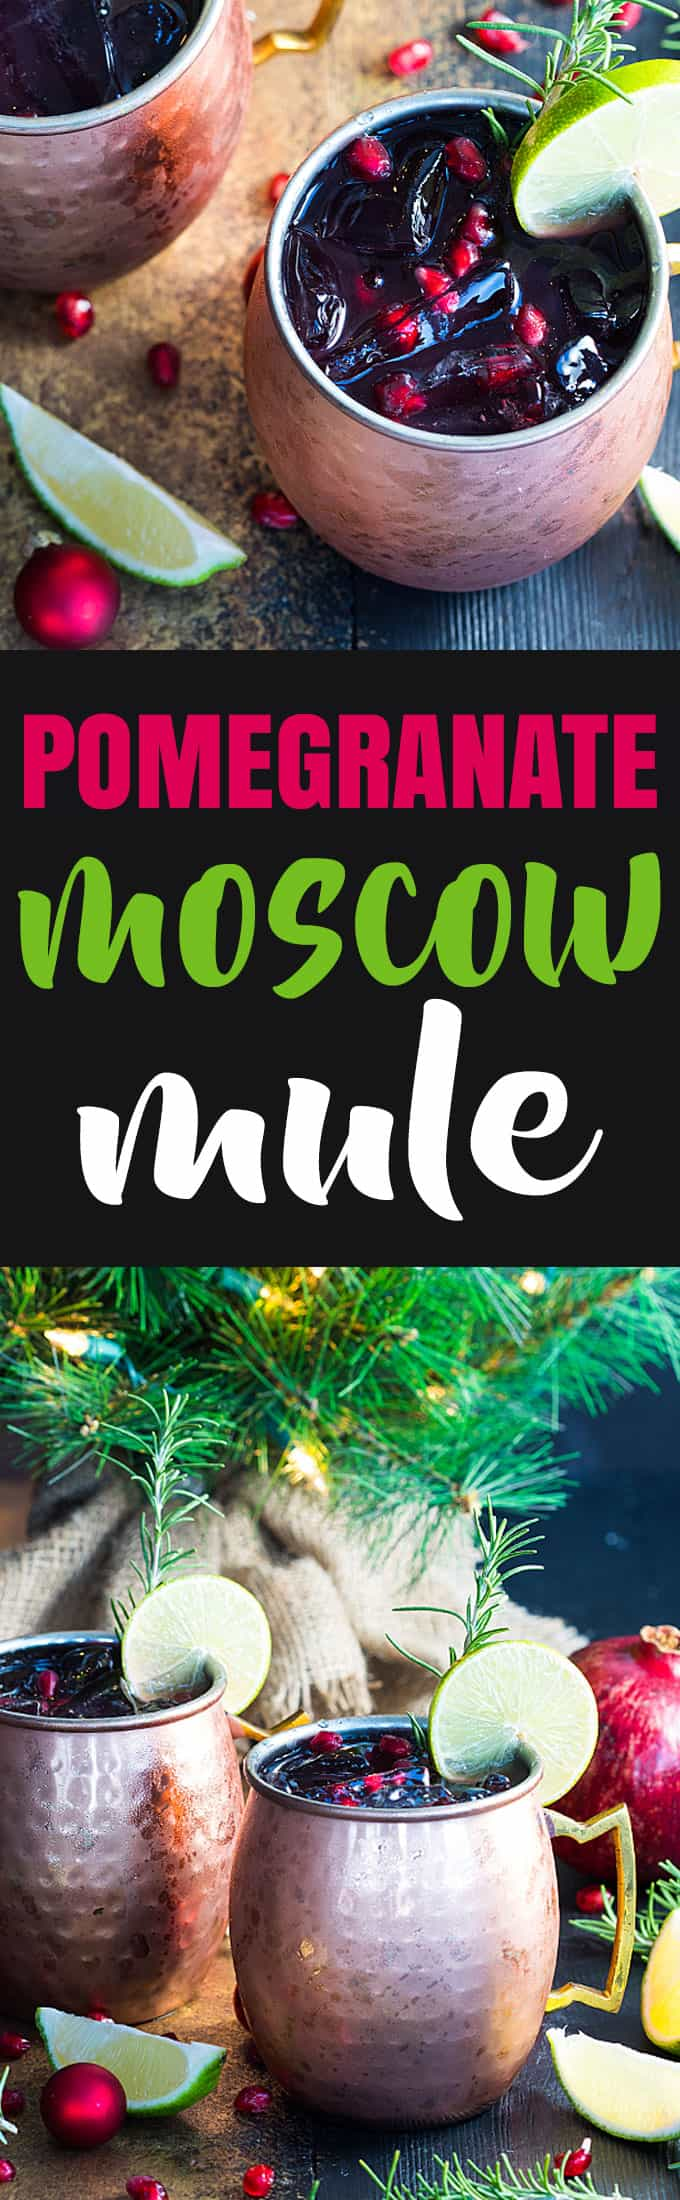 A two image vertical collage of pomegranate moscow mules with overlay text in the center.